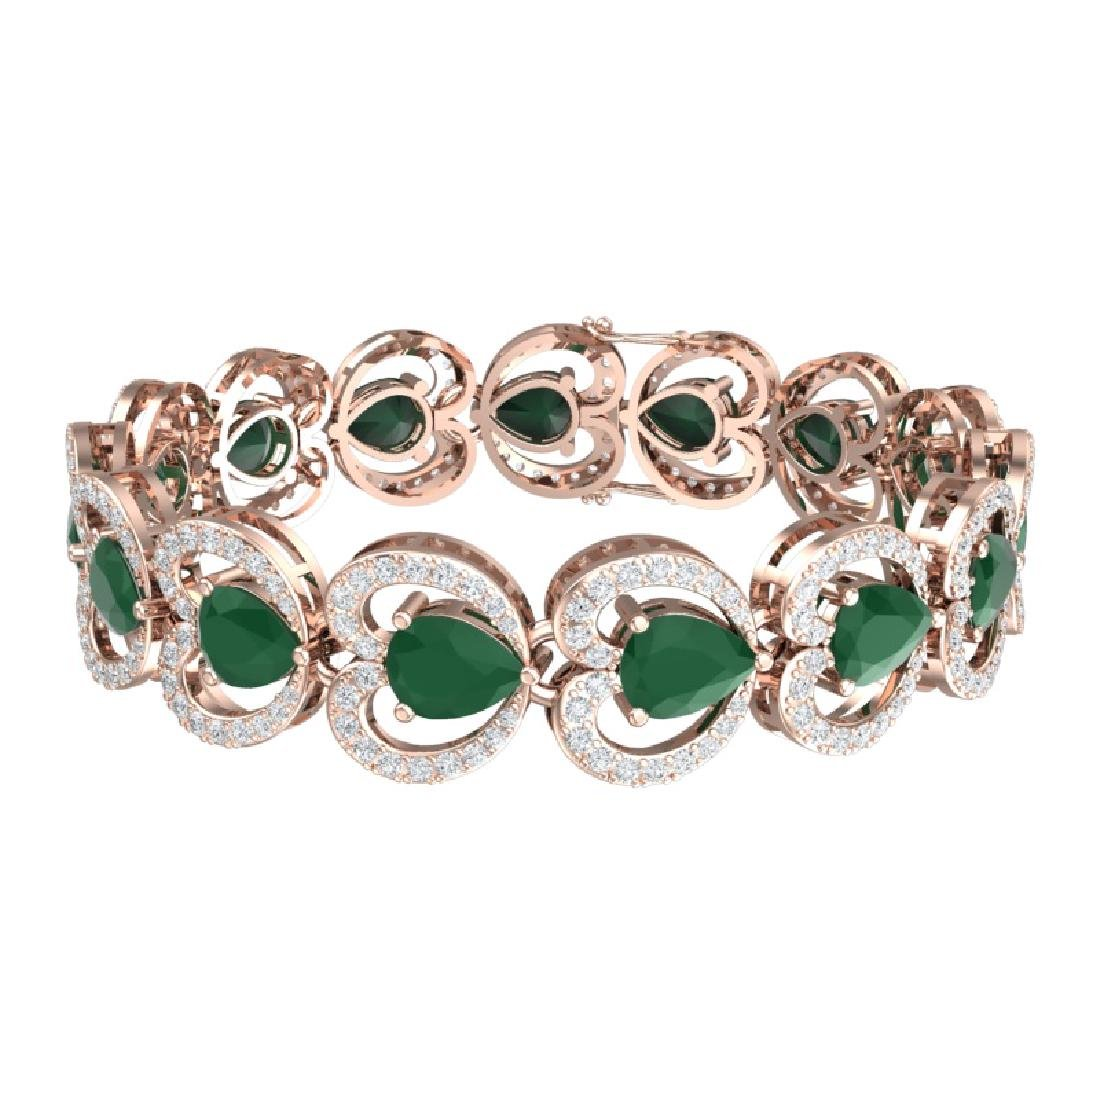 32.15 CTW Royalty Emerald & VS Diamond Bracelet 18K - 3